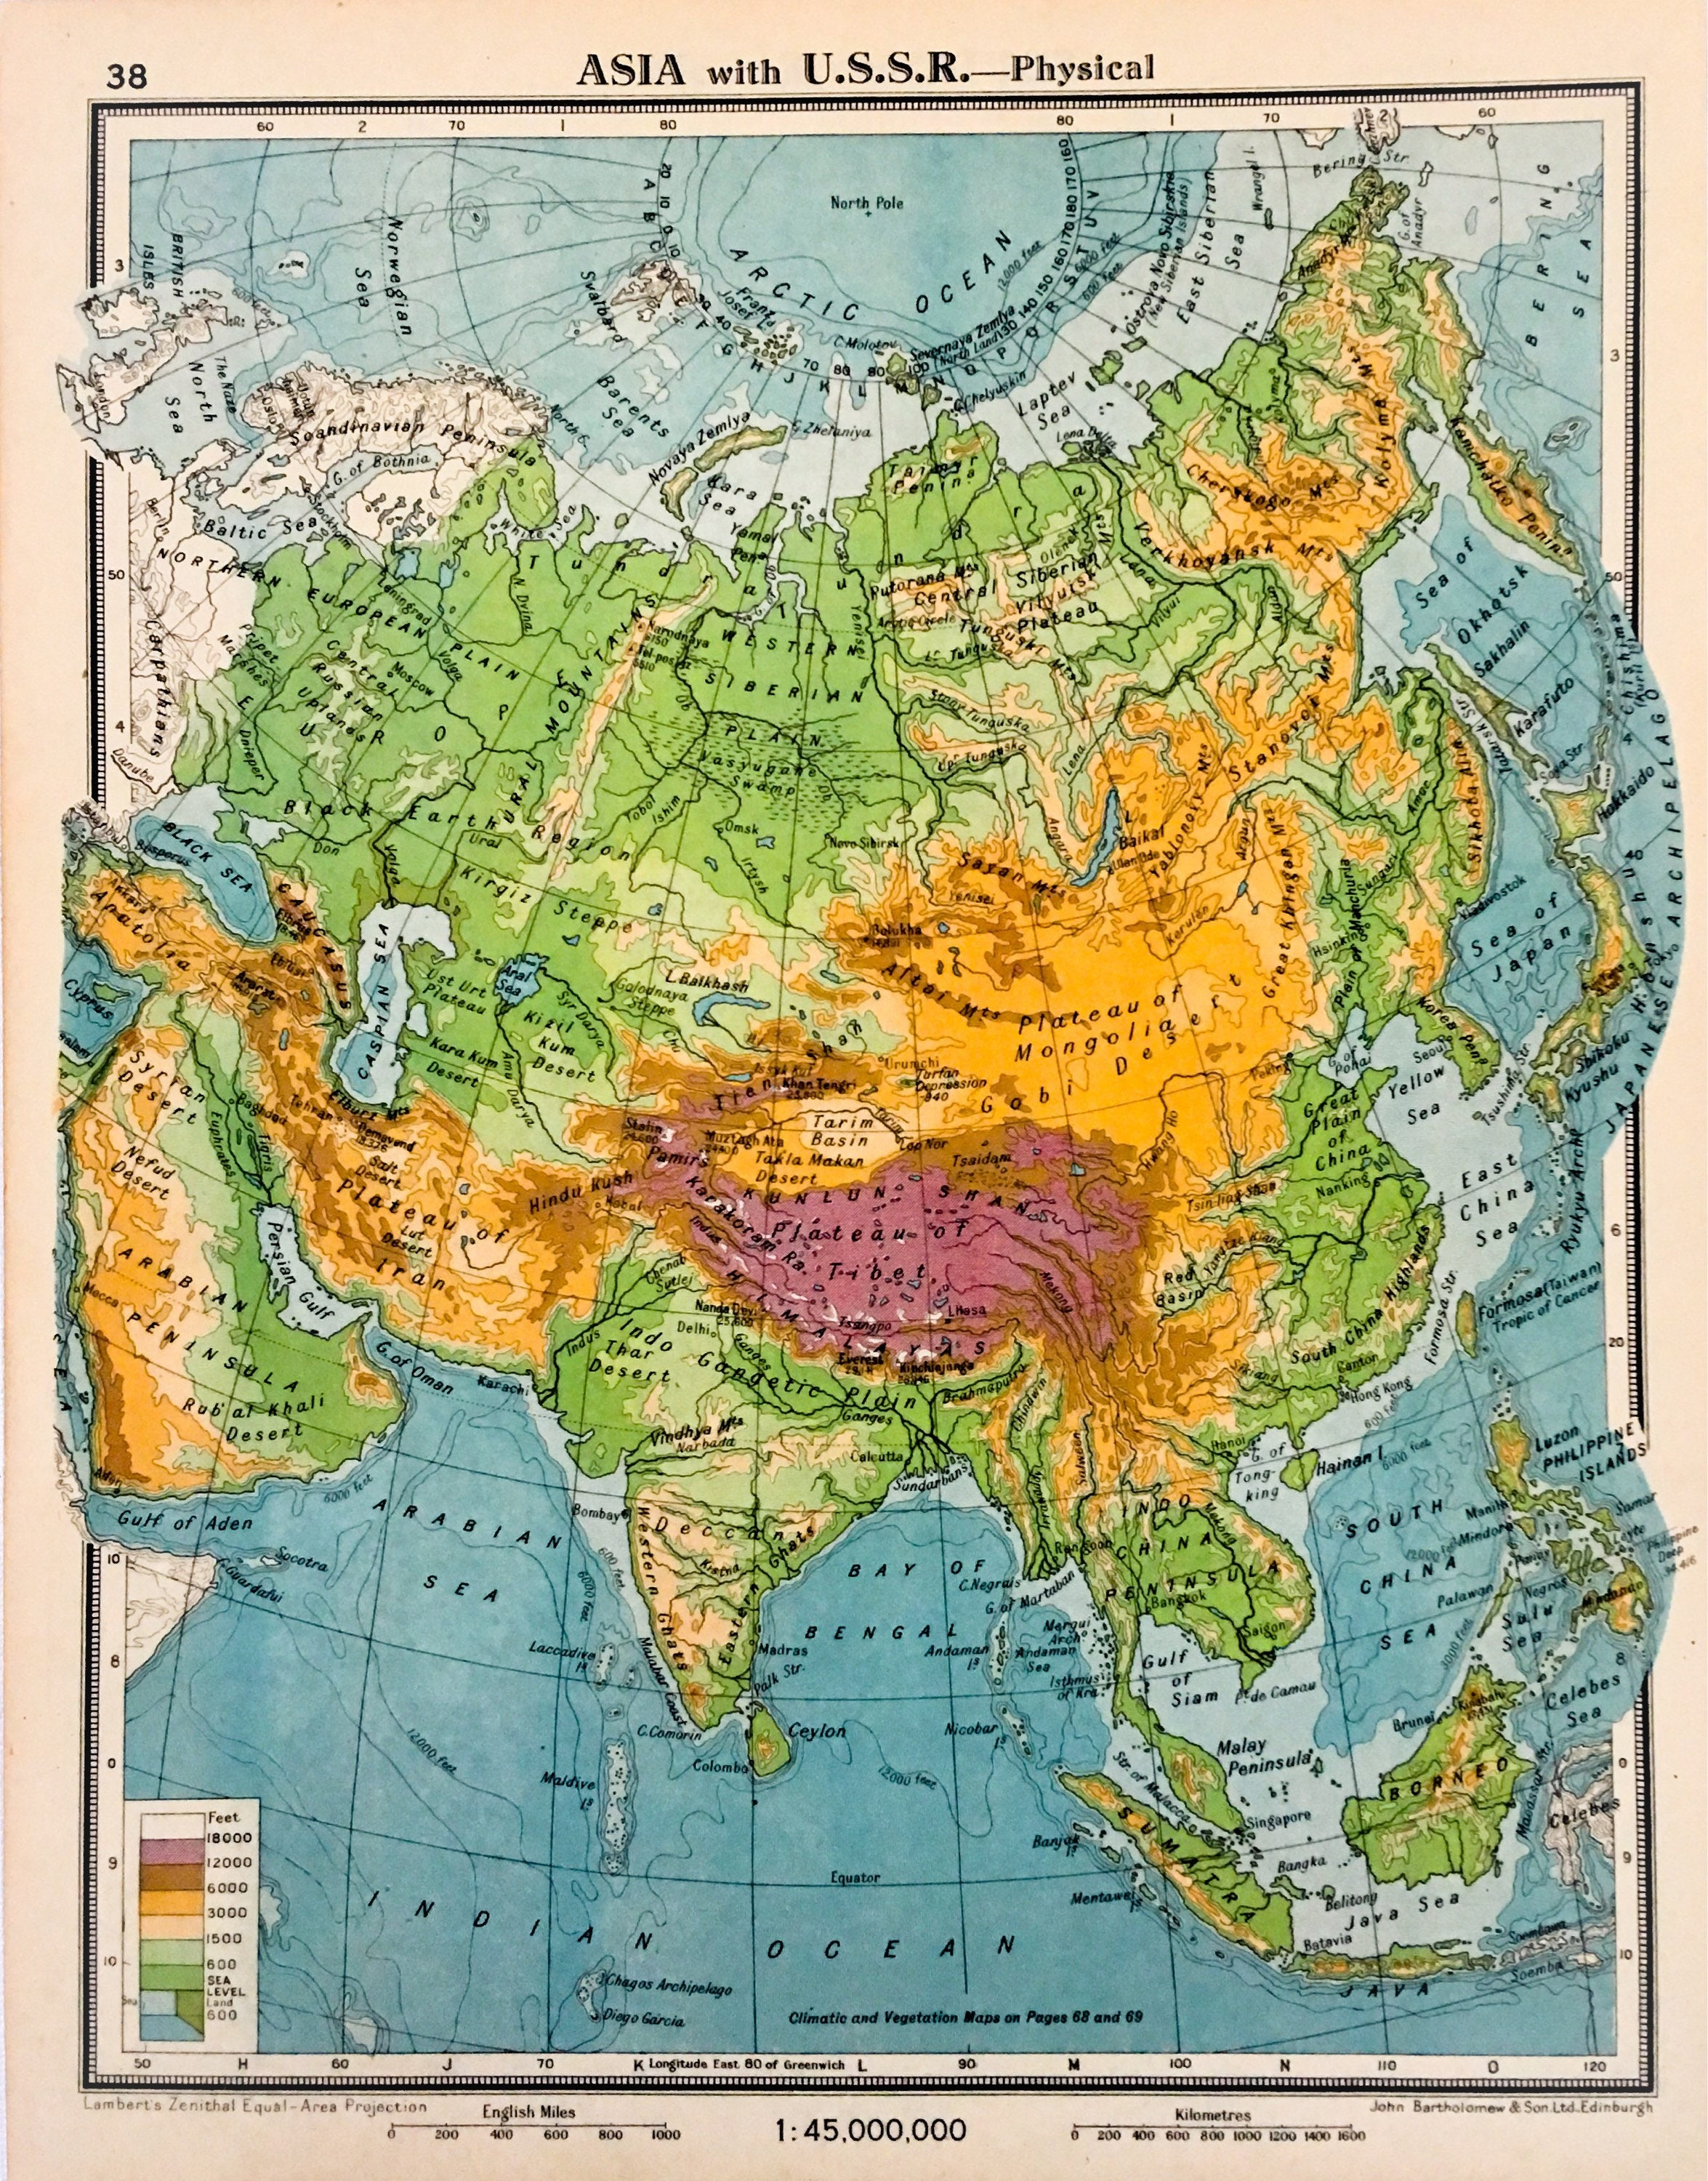 Asia with the ussr physical world maps original vintage page asia with the ussr physical world maps original vintage page 1940s wall art home decor nursery art gumiabroncs Image collections